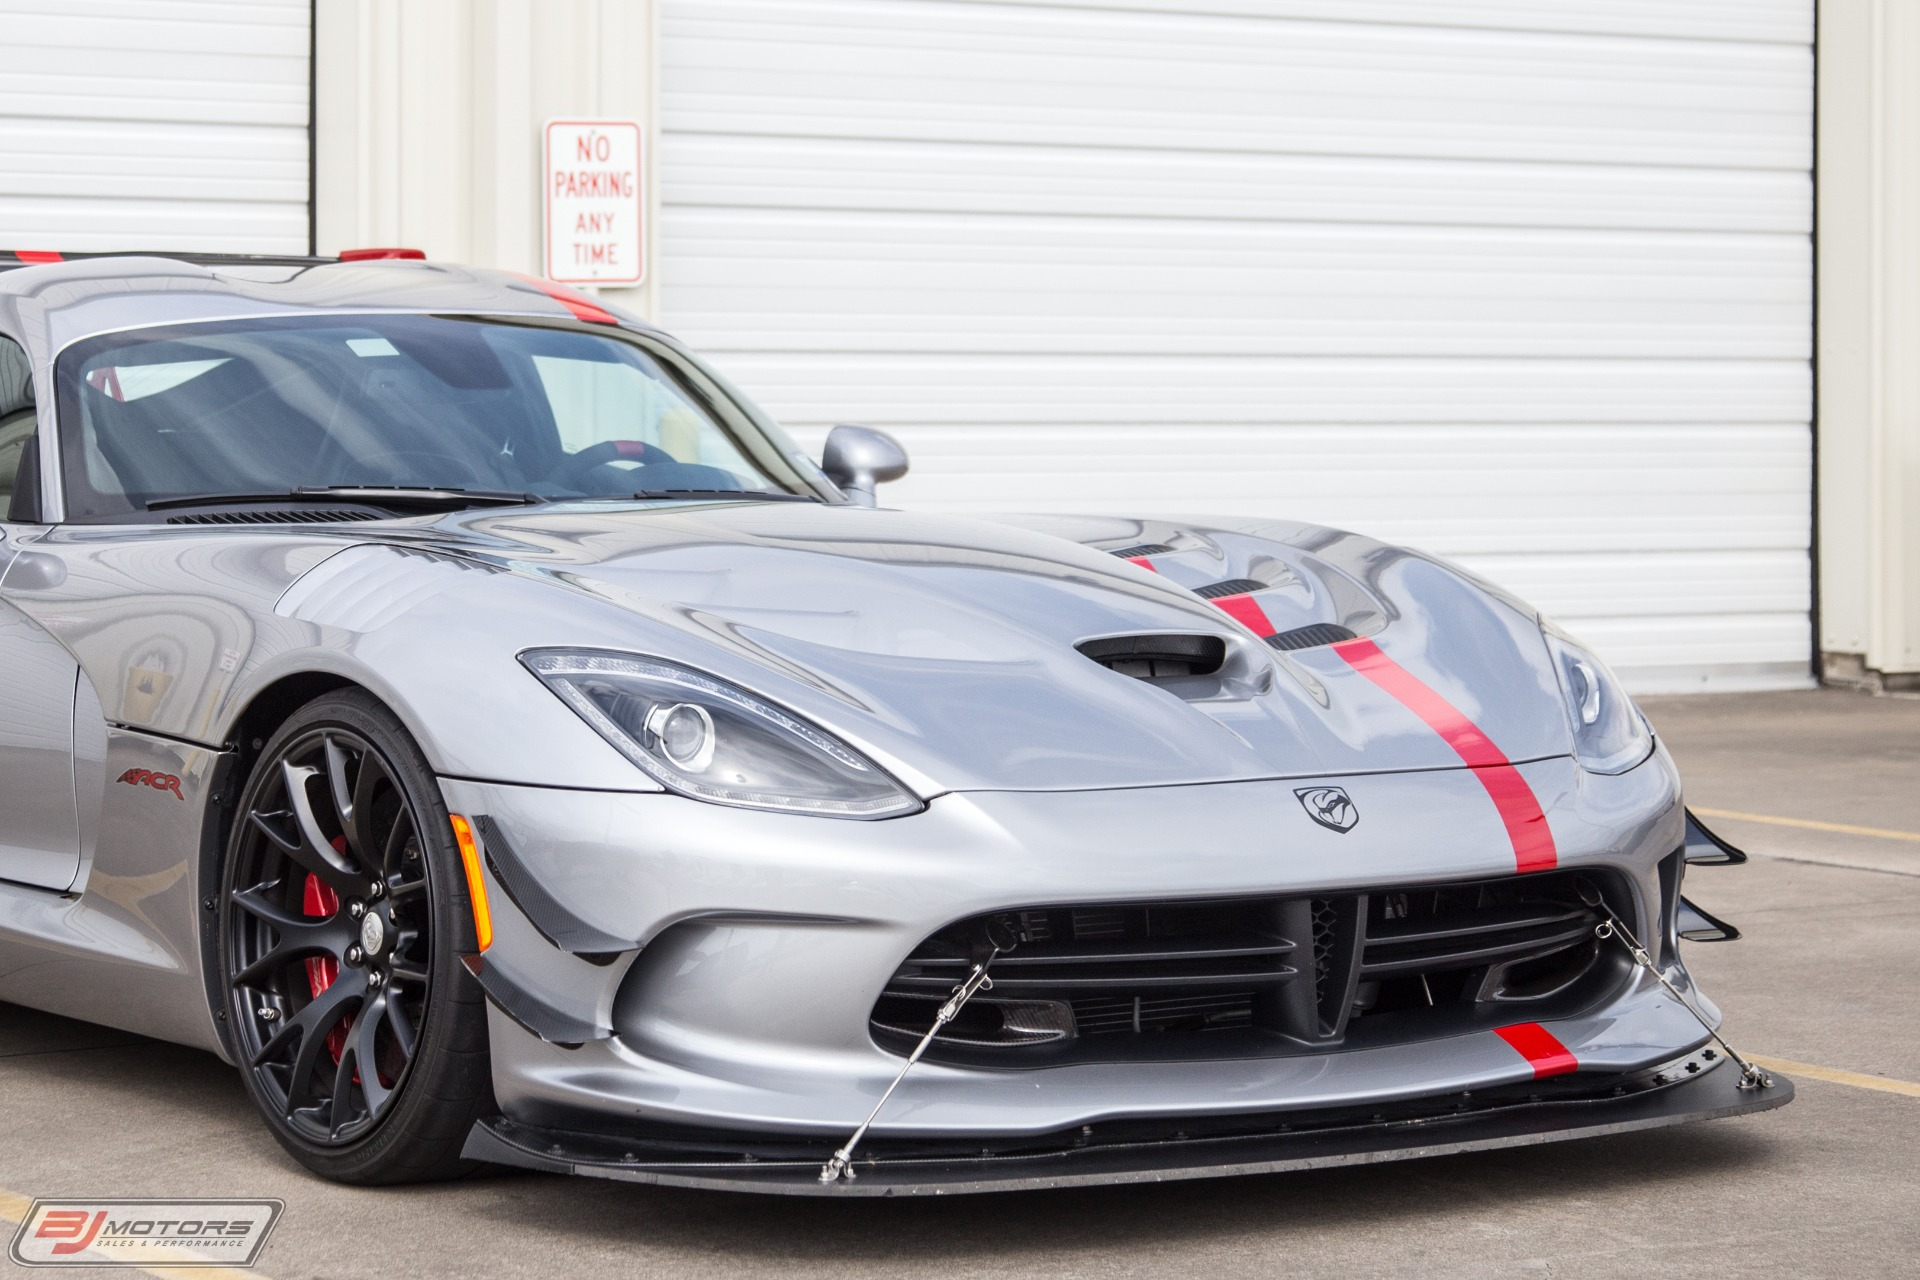 Used-2016-Dodge-Viper-ACR-Extreme-1-of-1